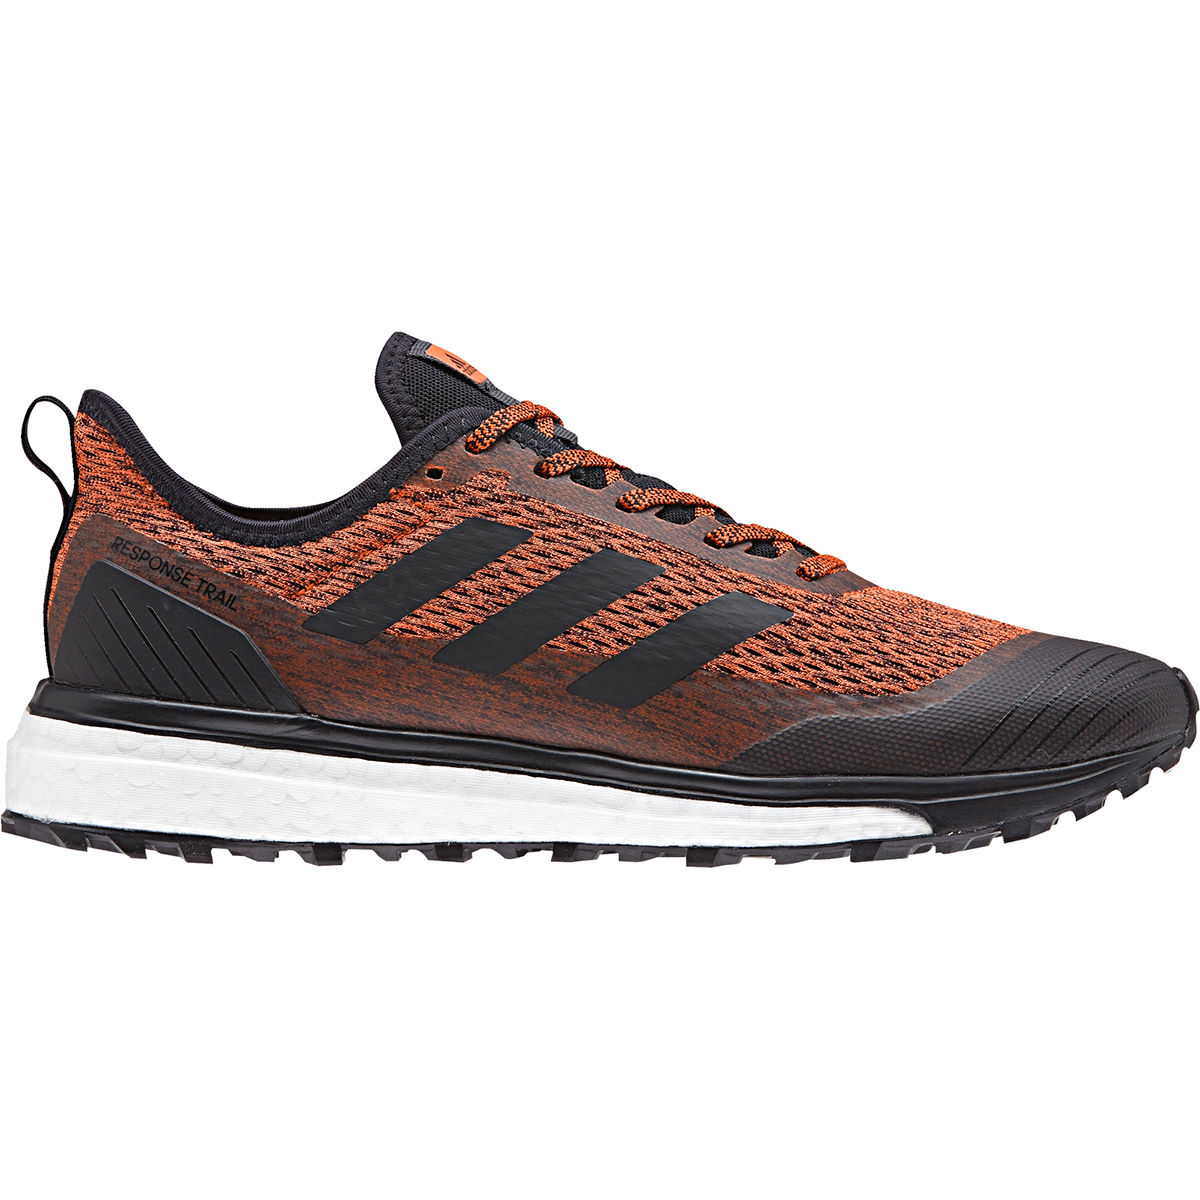 Zapatillas Adidas Response Trail - Zapatillas de trail